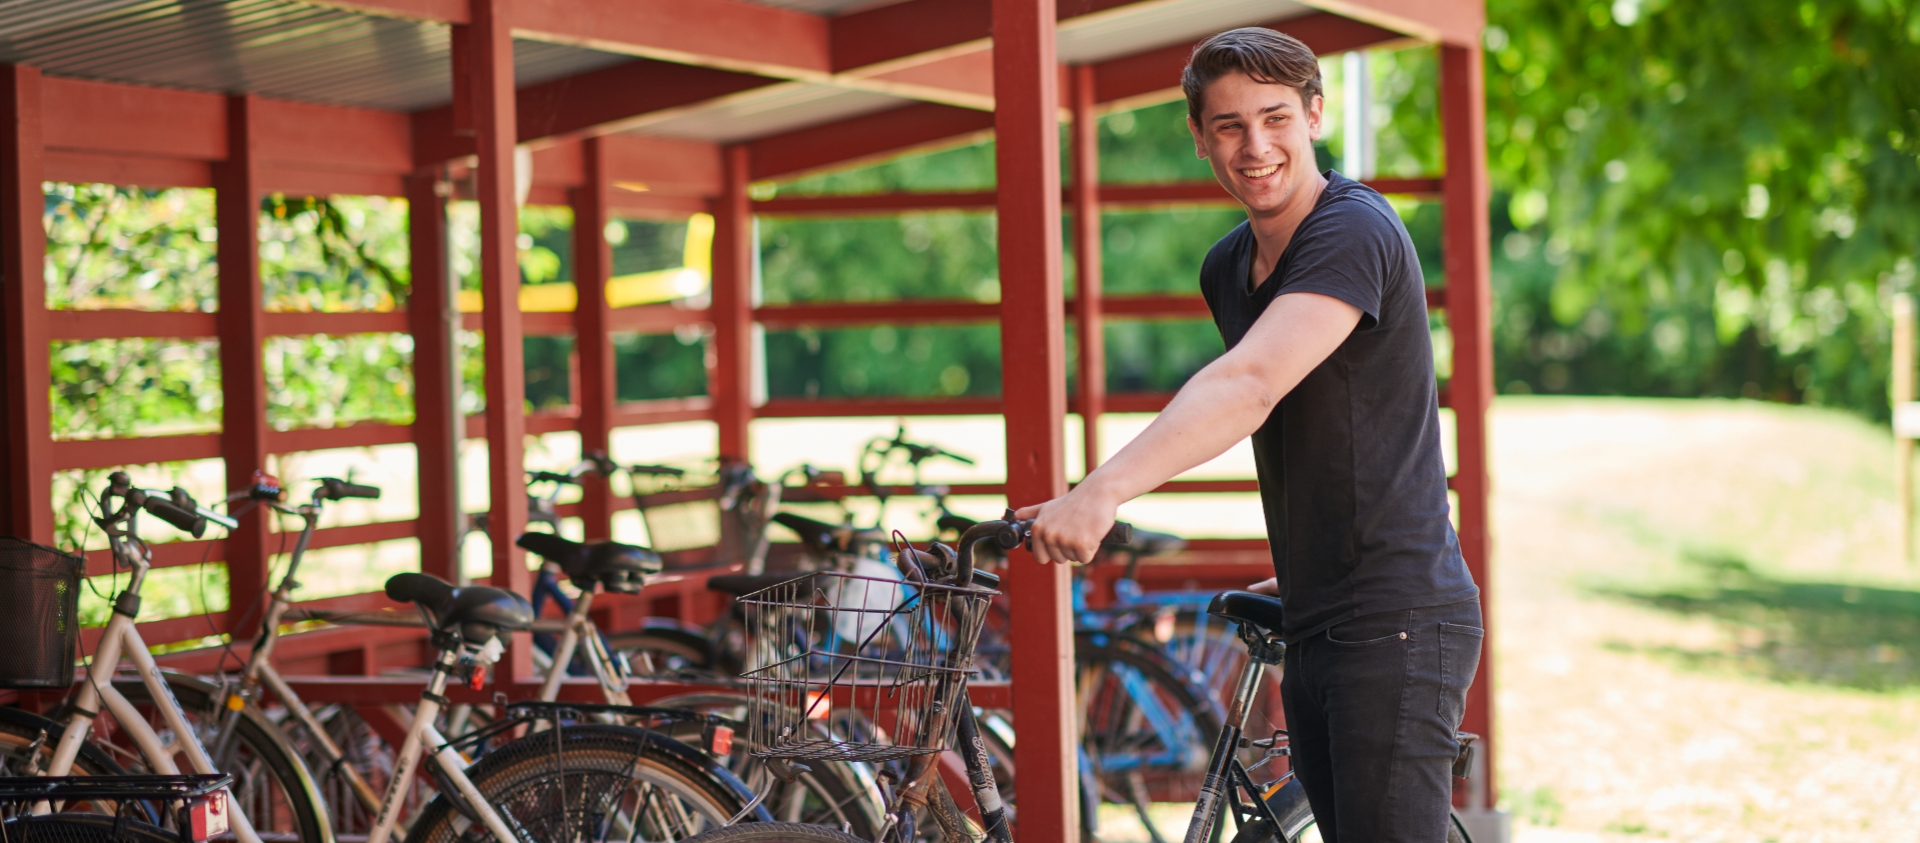 Male student with bike in front of bike parking with roof